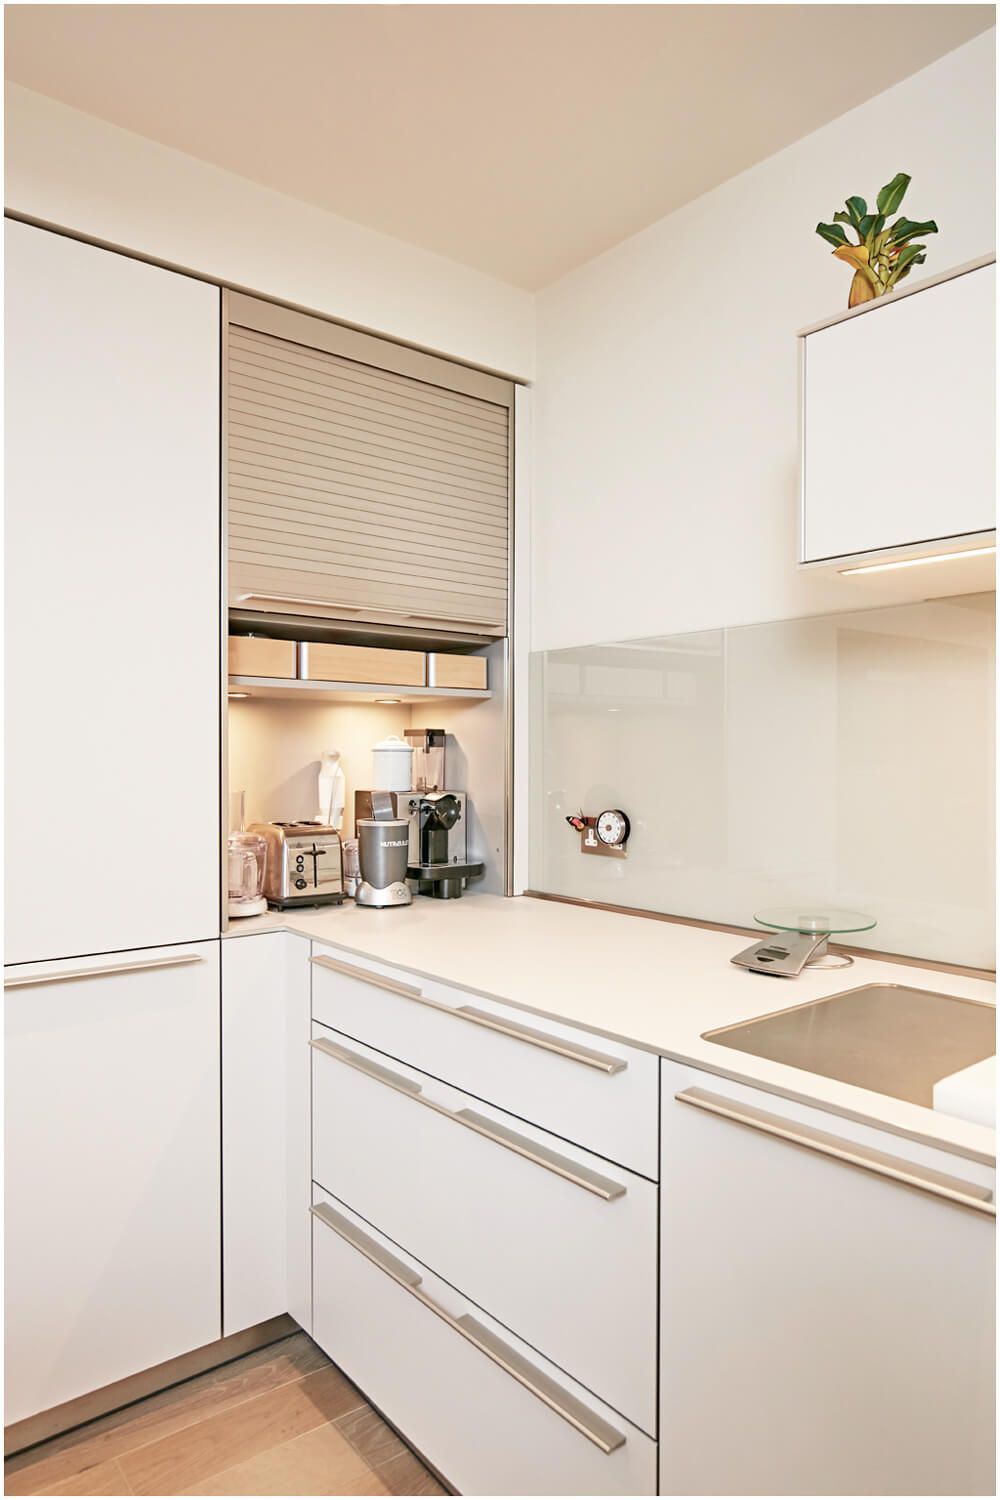 A Bulthaup B3 Roller Shutter Cabinet Creates A Space To Hide Away Those Everyday Items That Often Clutter Kitchen Layout Modern Kitchen White Kitchen Design